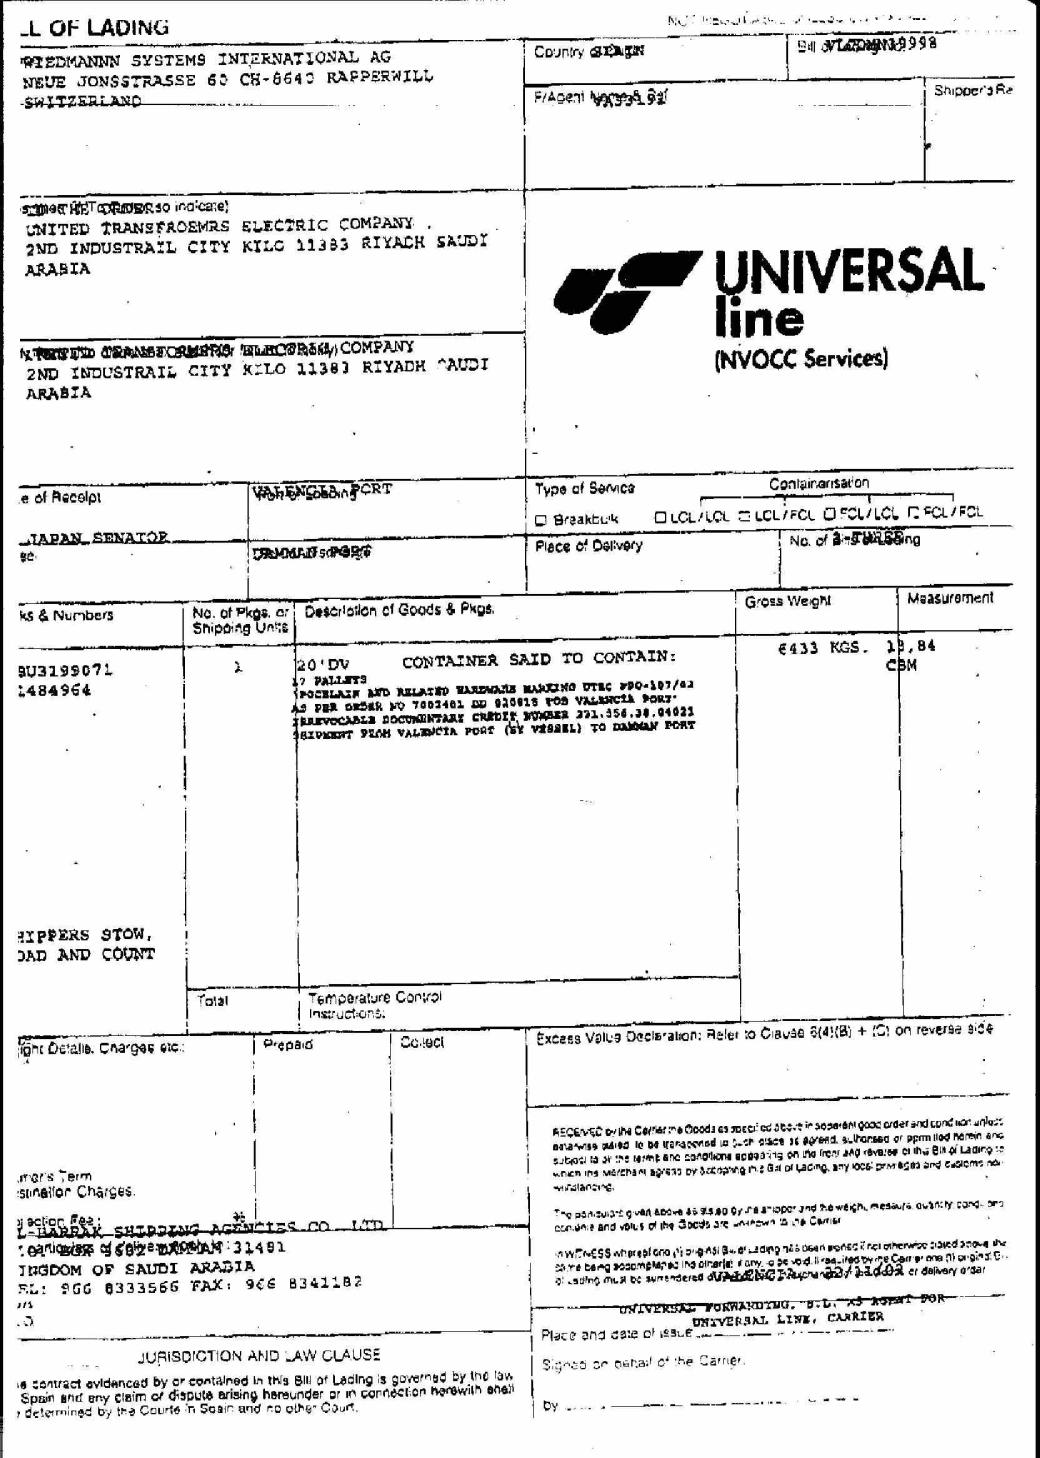 Bill Of Lading Document  Blank Bill Of Lading Form Template